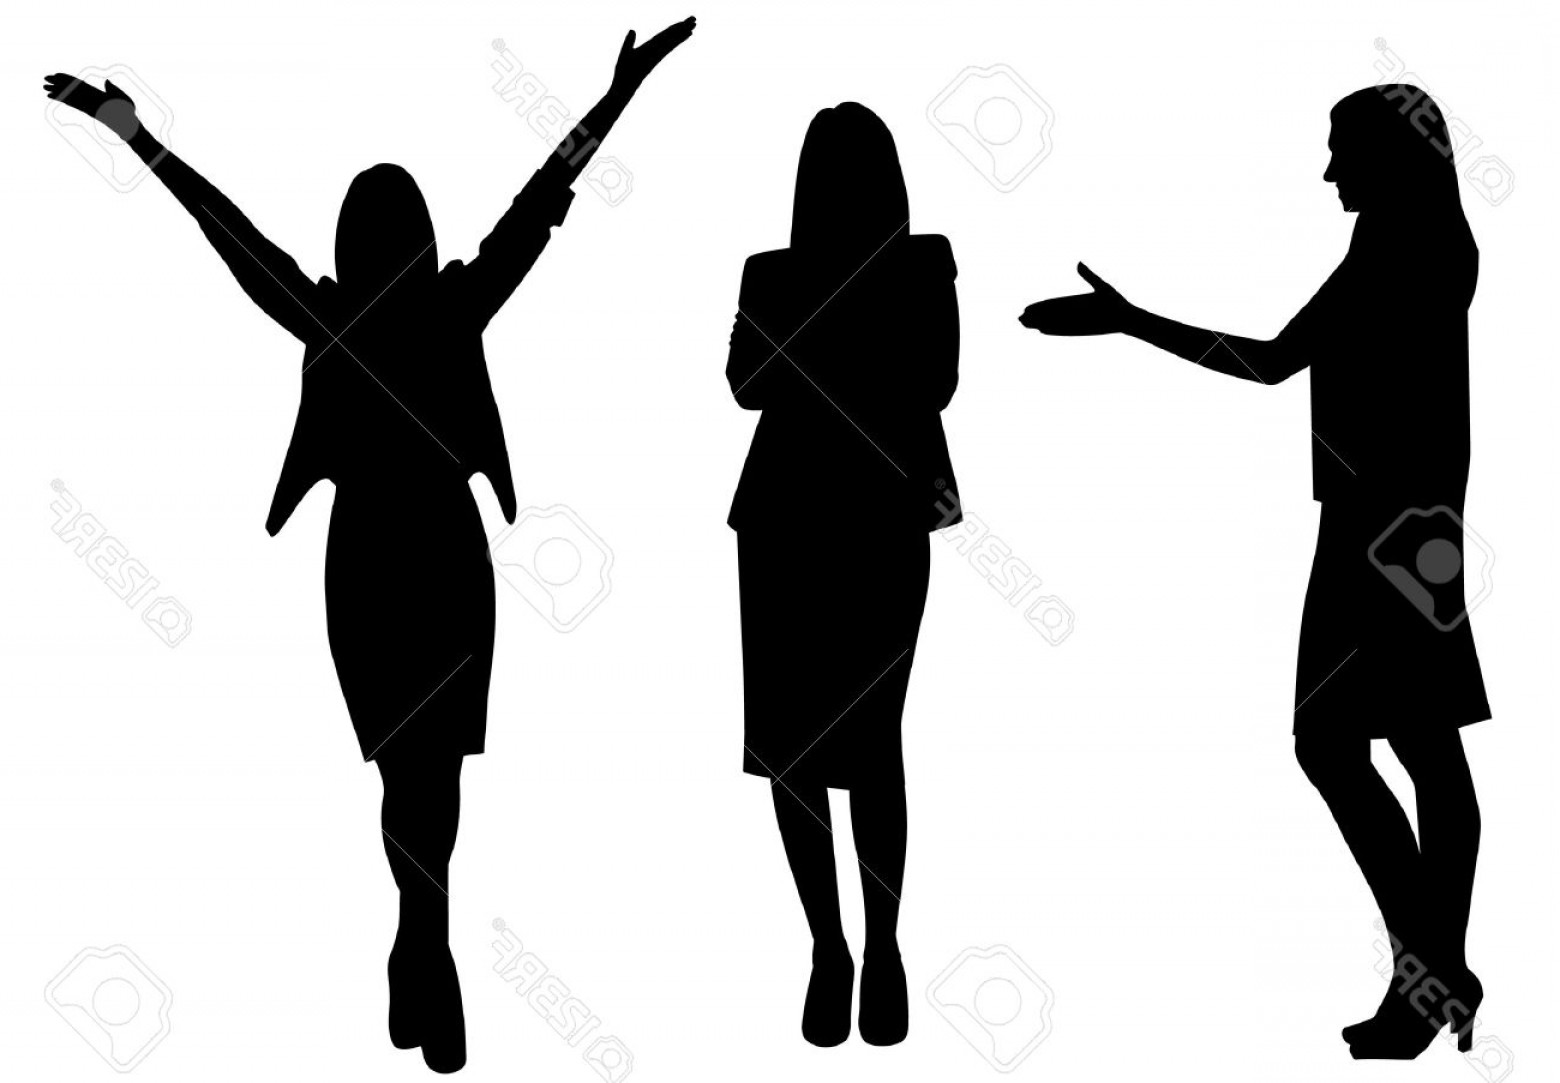 silhouette woman vector at getdrawings com free for personal use rh getdrawings com women's day vector victor woman missing